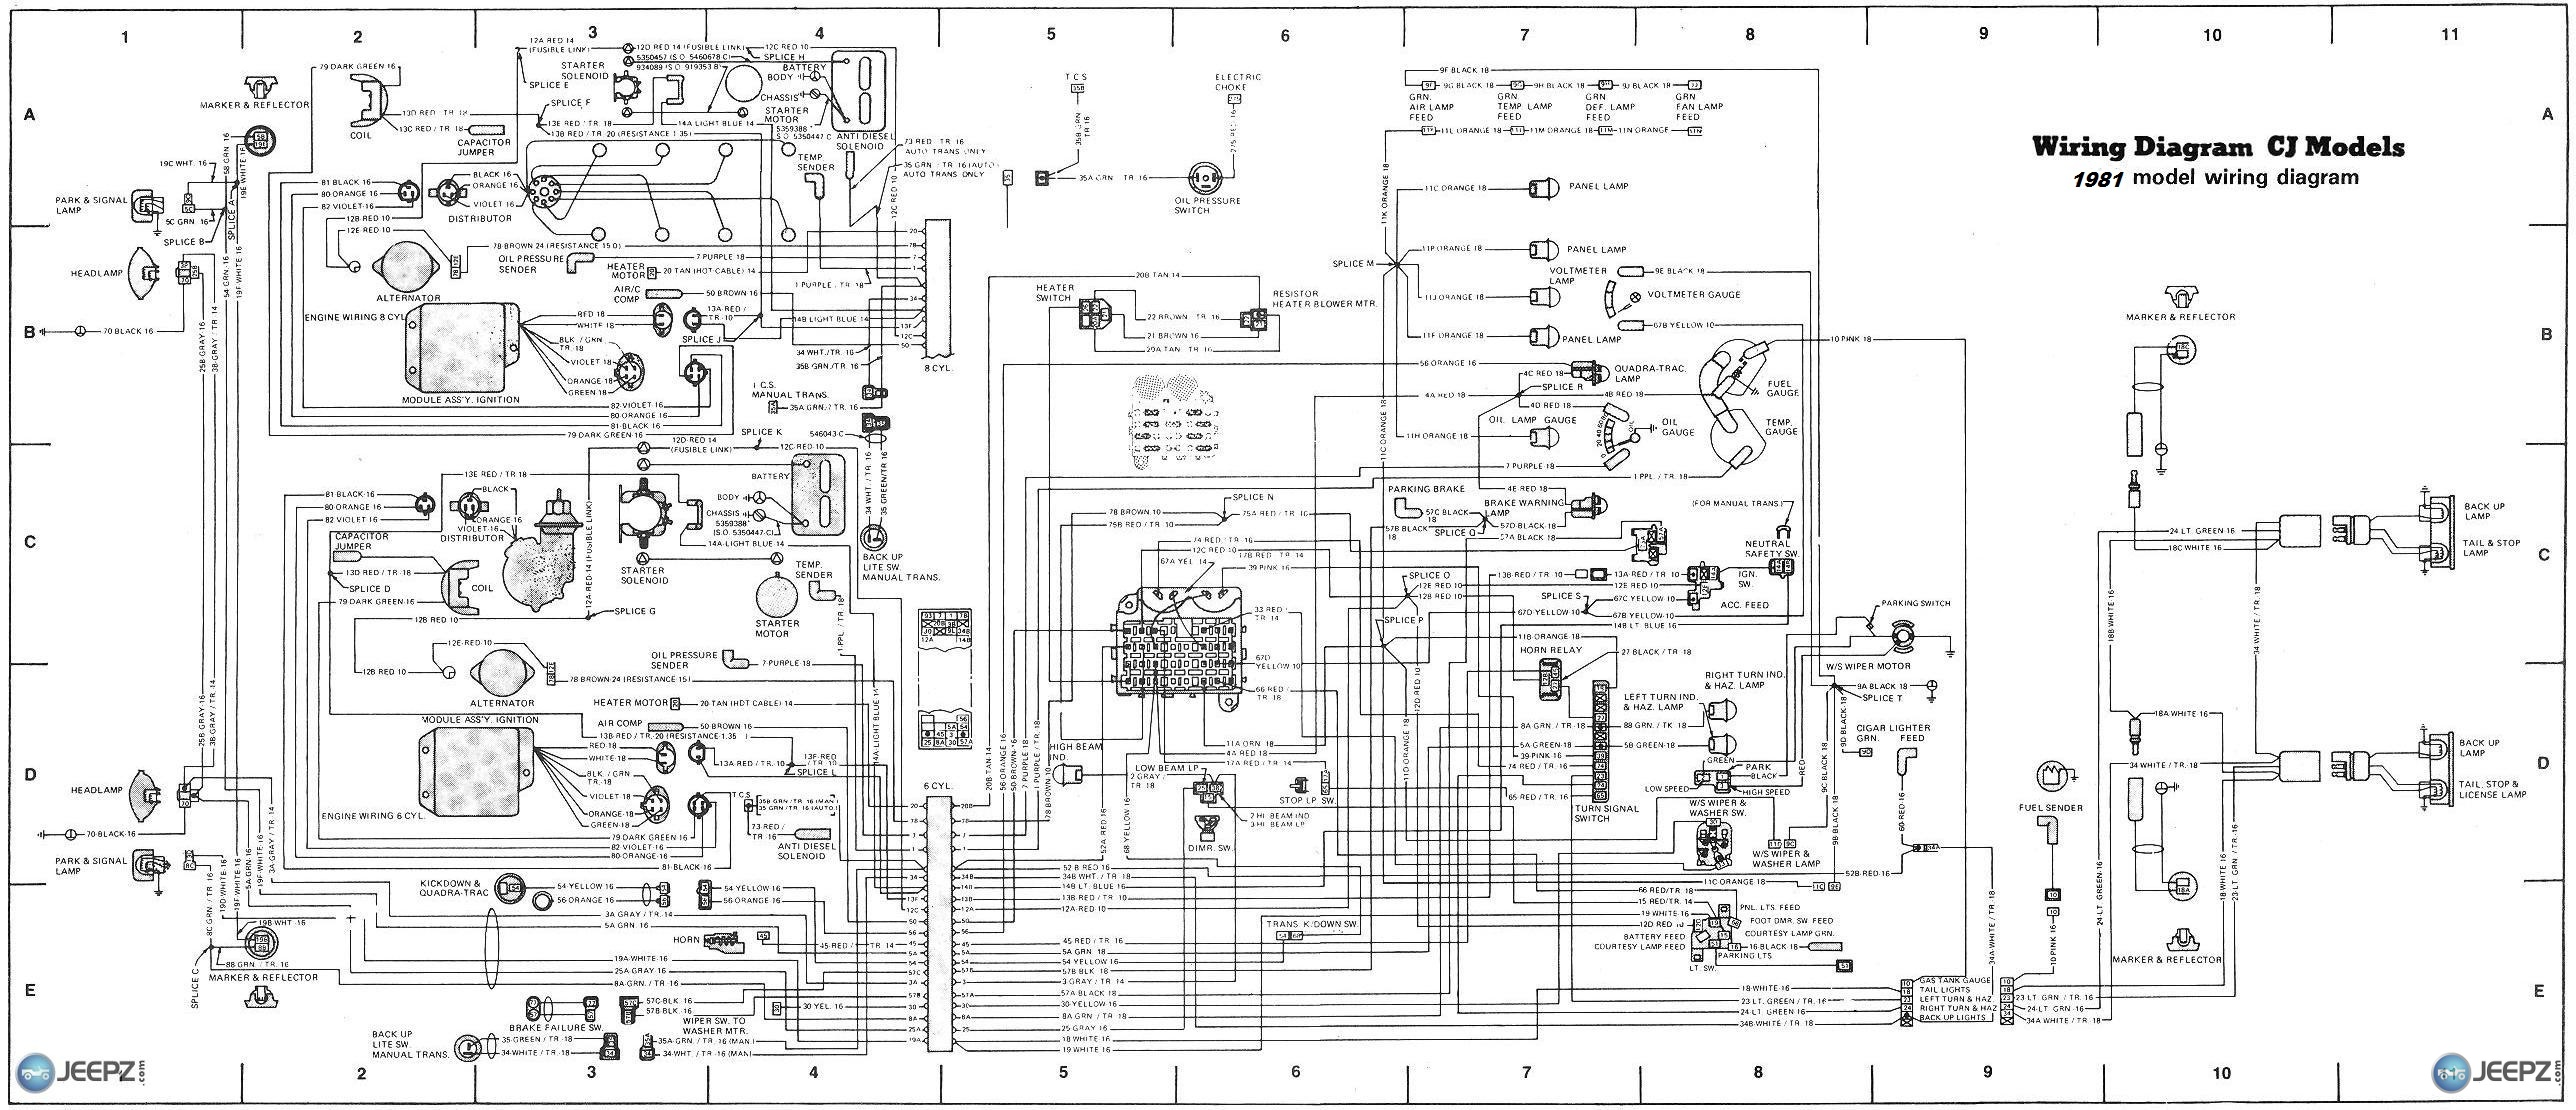 cj 7 wire diagram 2008 jeep wrangler fuse box diagram 2008 jeep wrangler  fuse box diagram